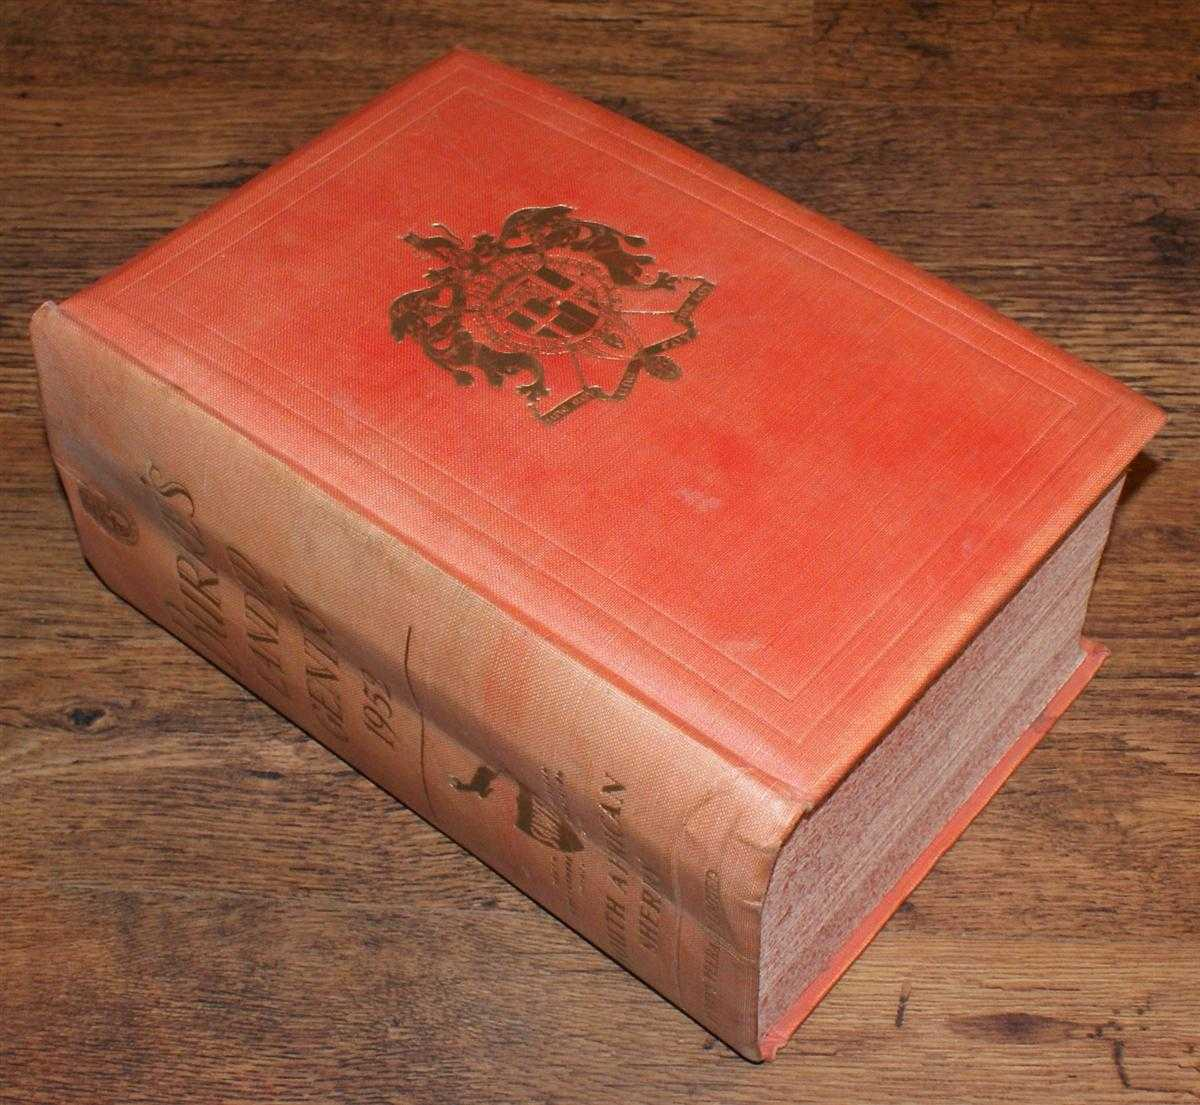 Burke's Geanealogical and Heraldic History of the Landed Gentry, Seventeenth Edition, MCMLII (1952), Founded 1836 by John Burke and Sir Barnard Burke, Edited by L G Pine